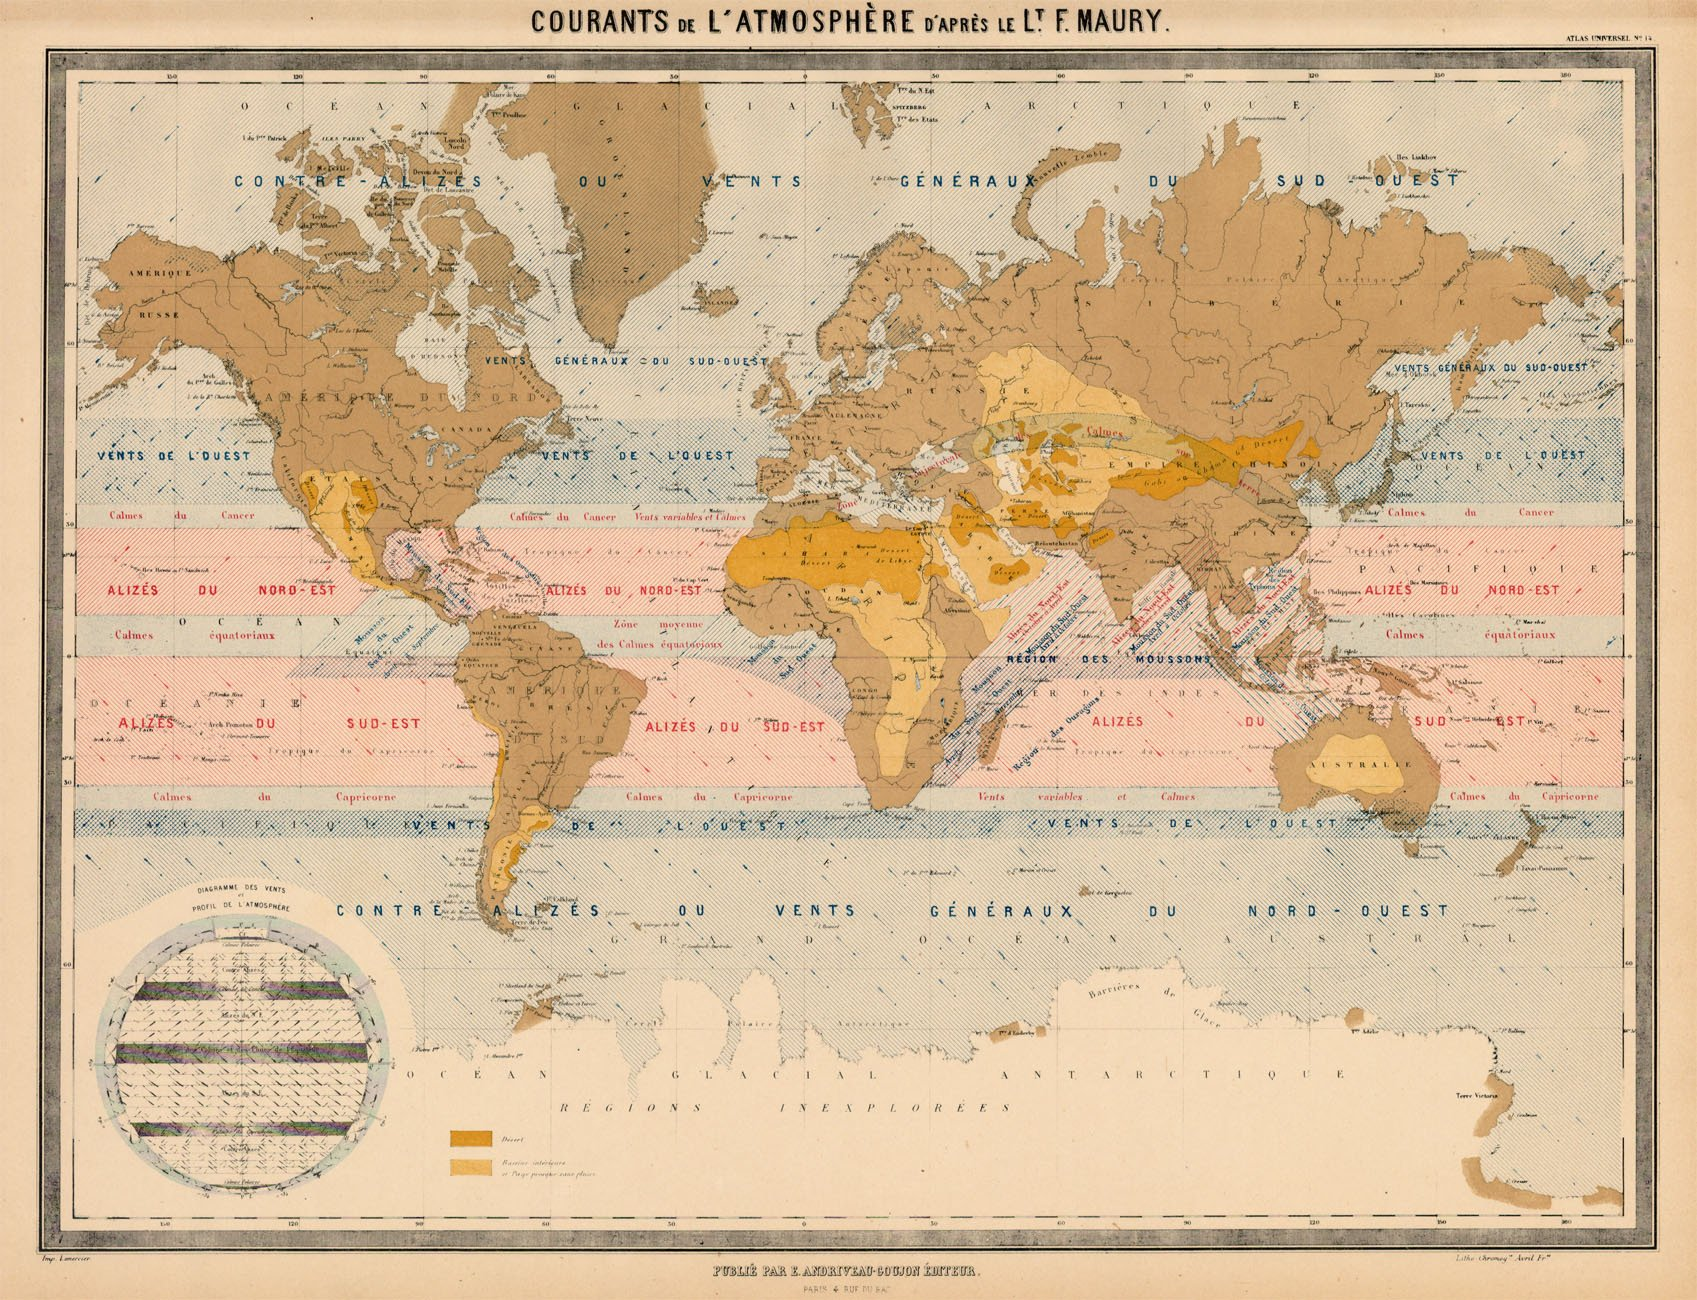 Maury's map of the known world, circa 1847.